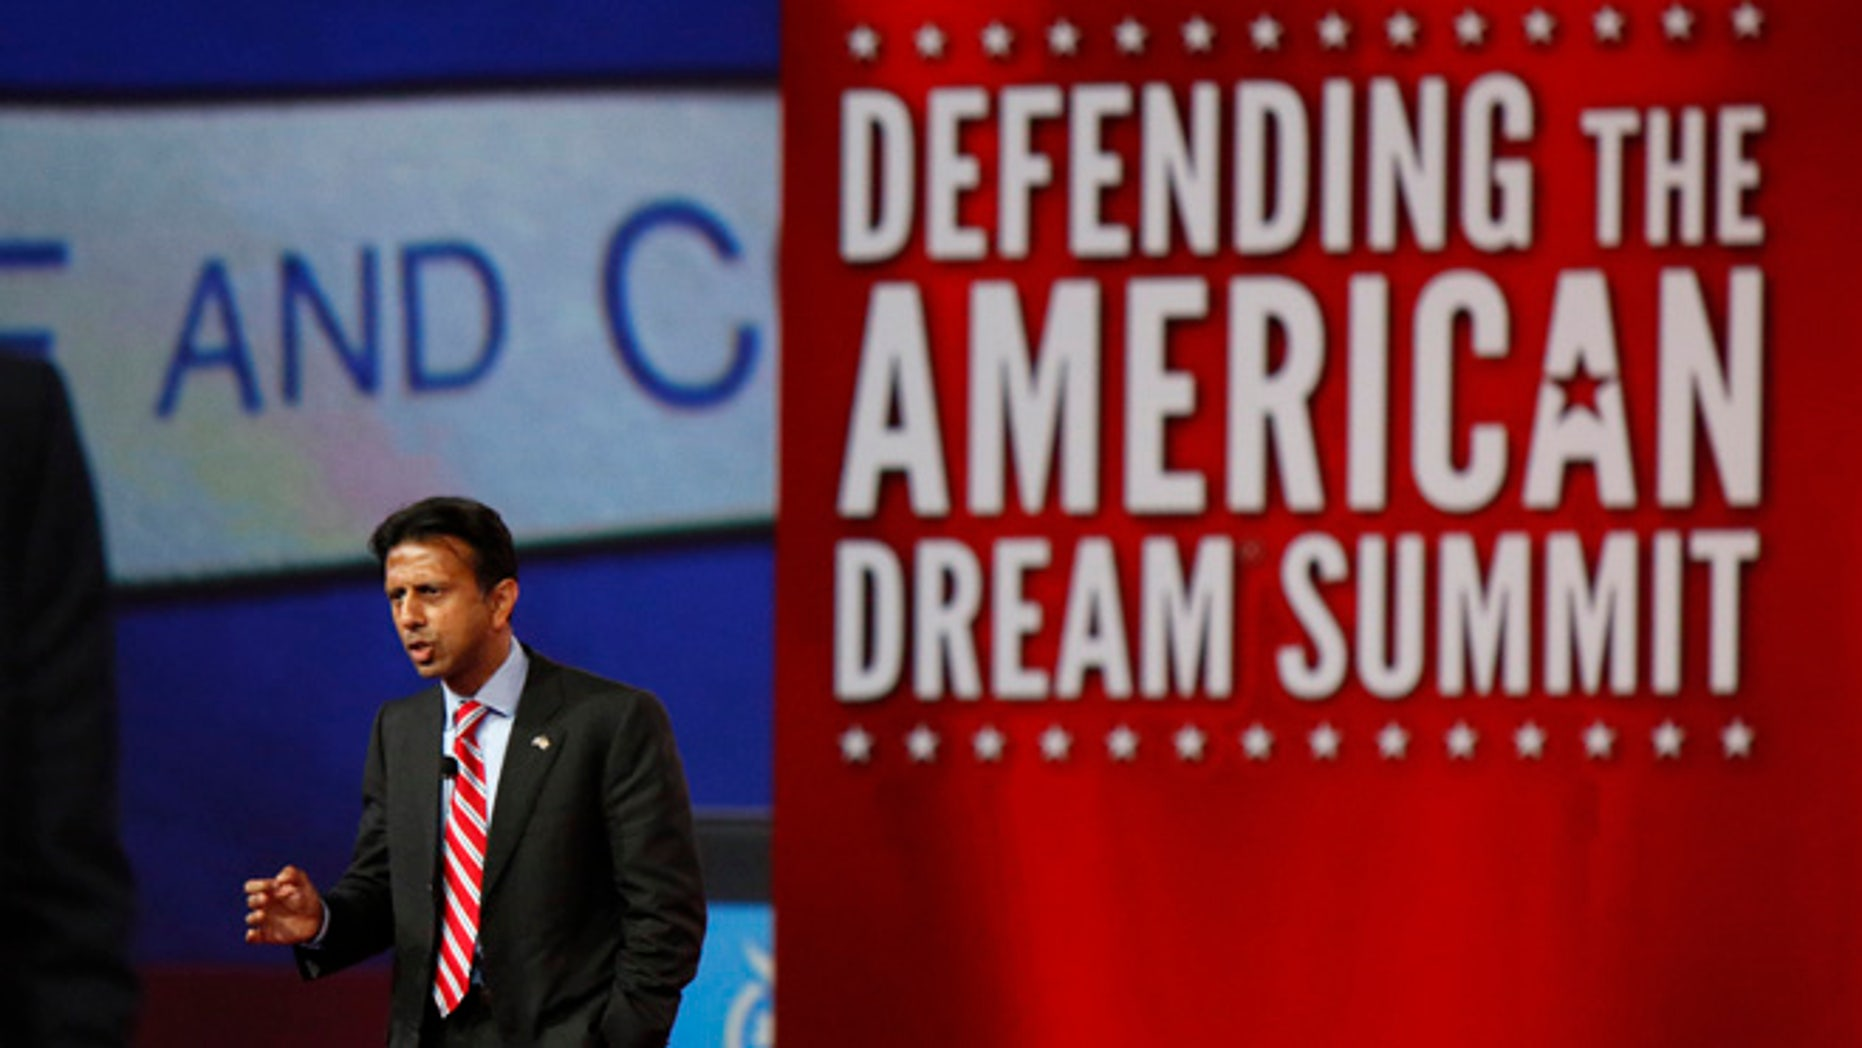 Aug. 21, 2015: GOP presidential candidate Bobby Jindal at Defending the American Dream summit by Americans for Prosperity, Columbus, Ohio.